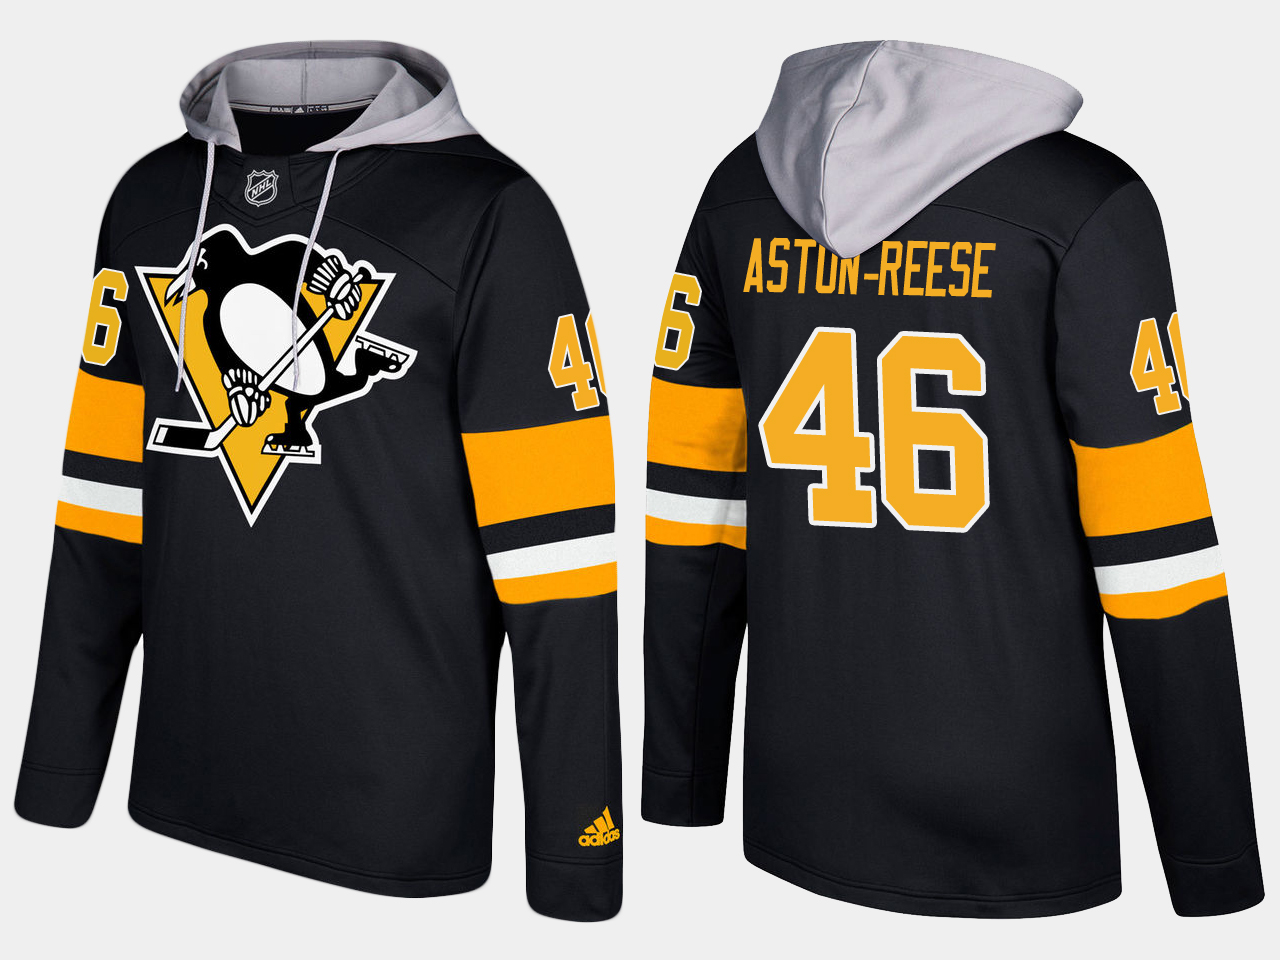 Men NHL Pittsburgh penguins 46 zach aston reese black hoodie